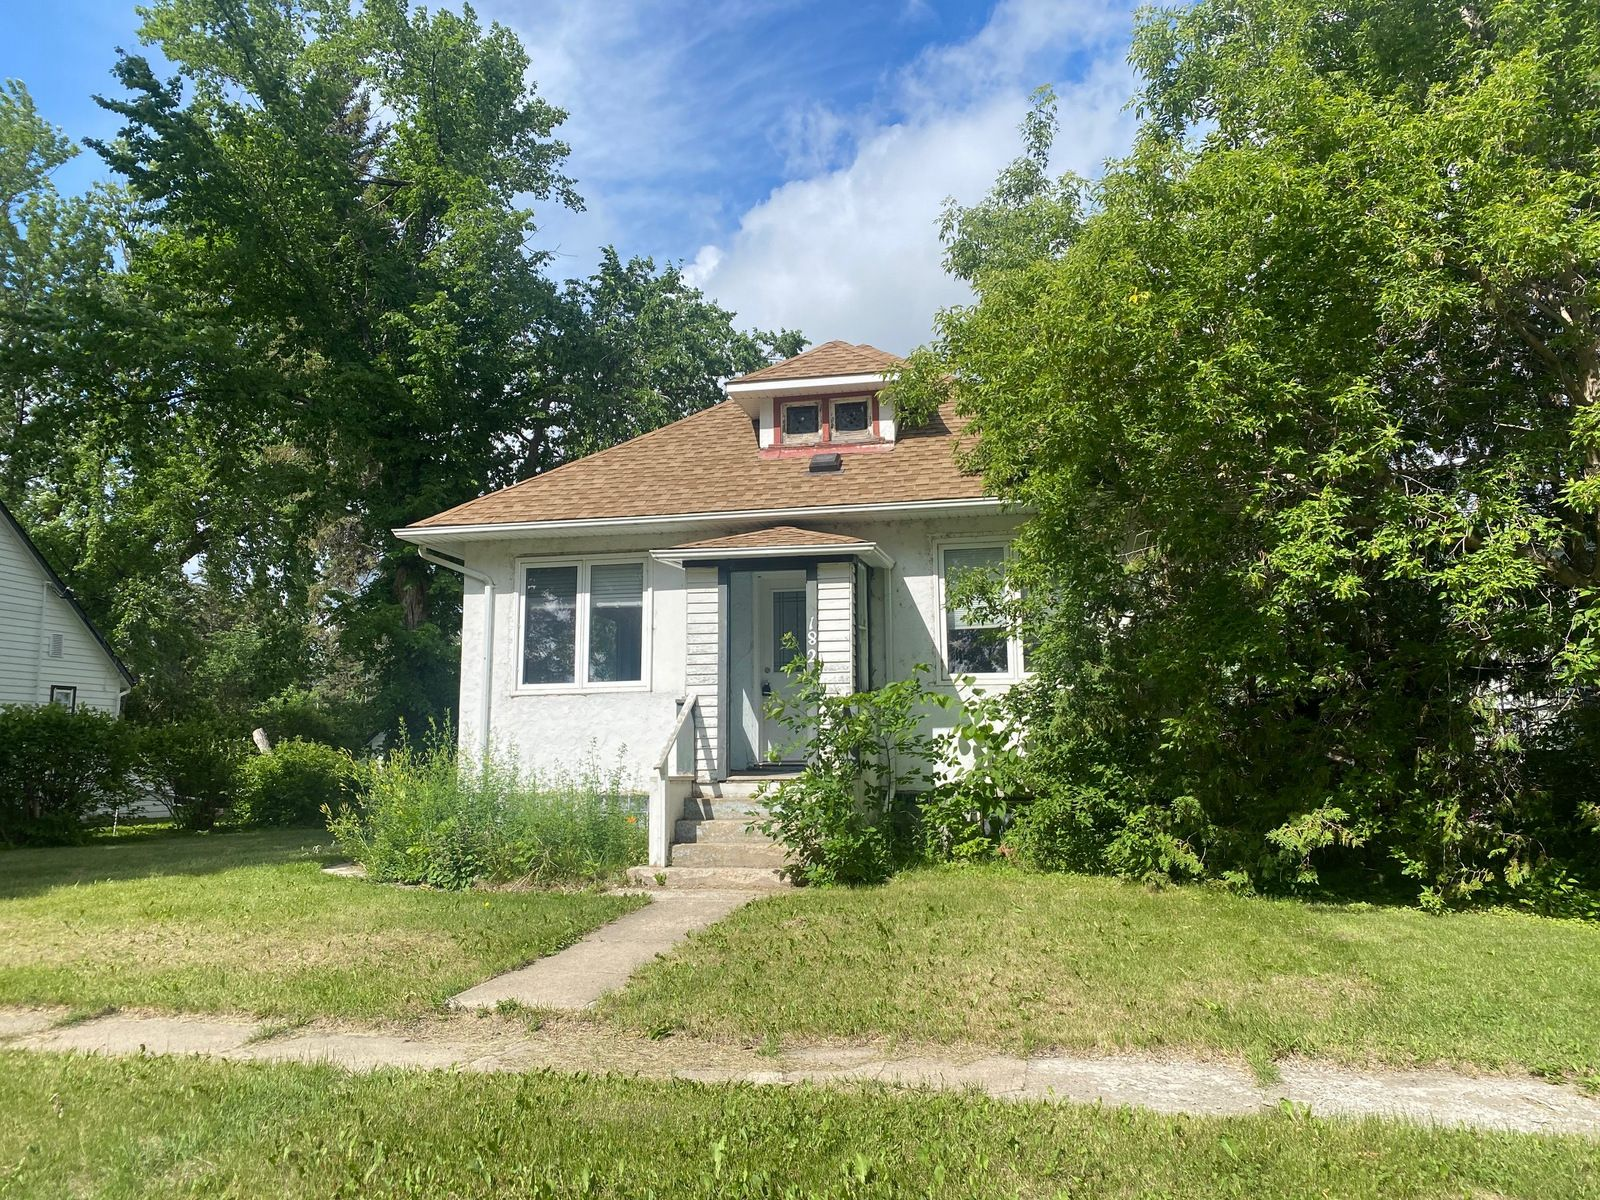 Main Photo: 182 Griffin Street in Treherne: House for sale : MLS®# 202109680